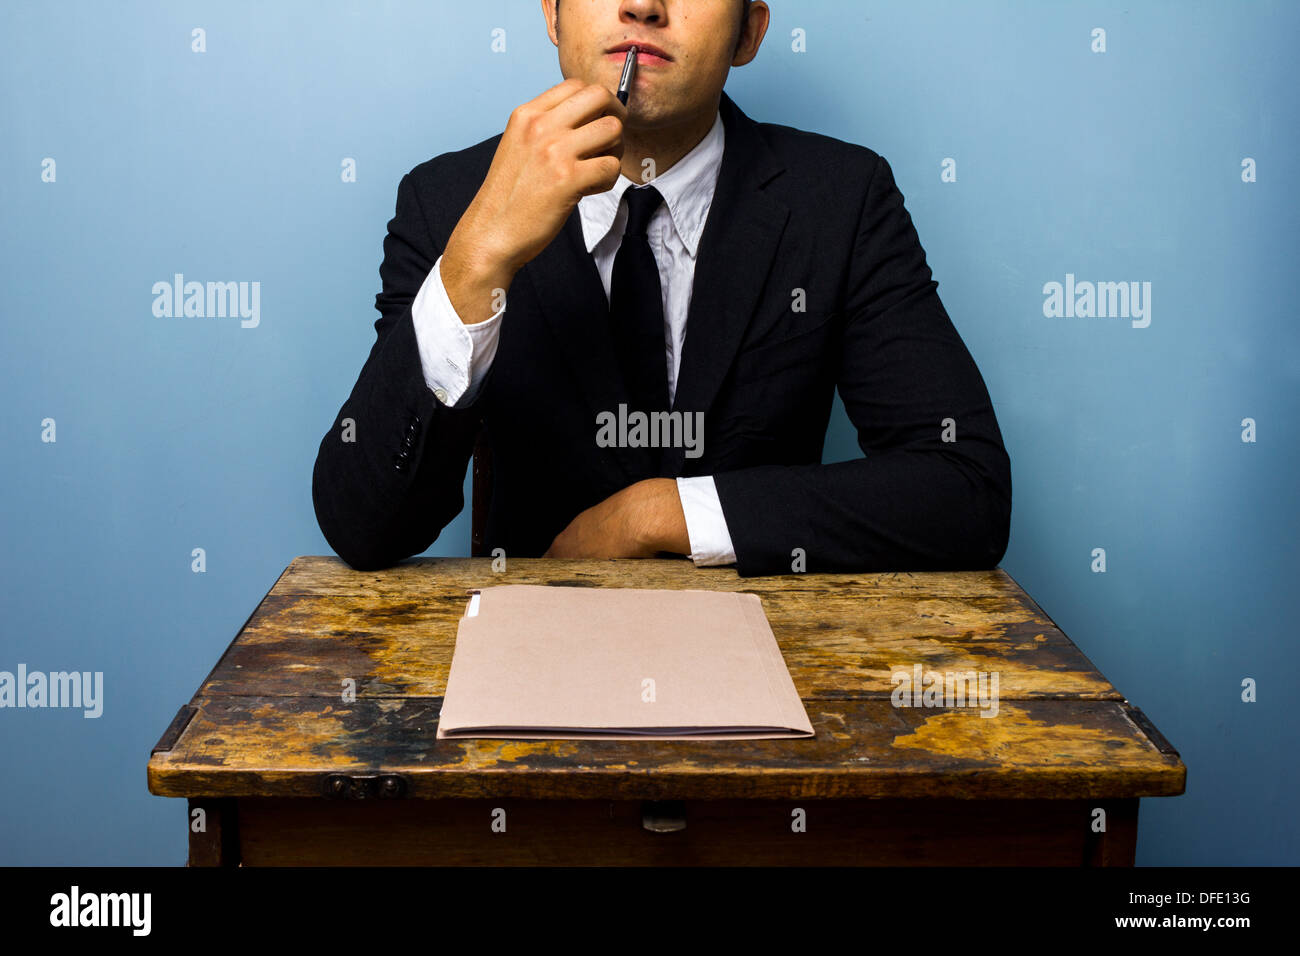 Businessman is sitting at desk and thinking - Stock Image